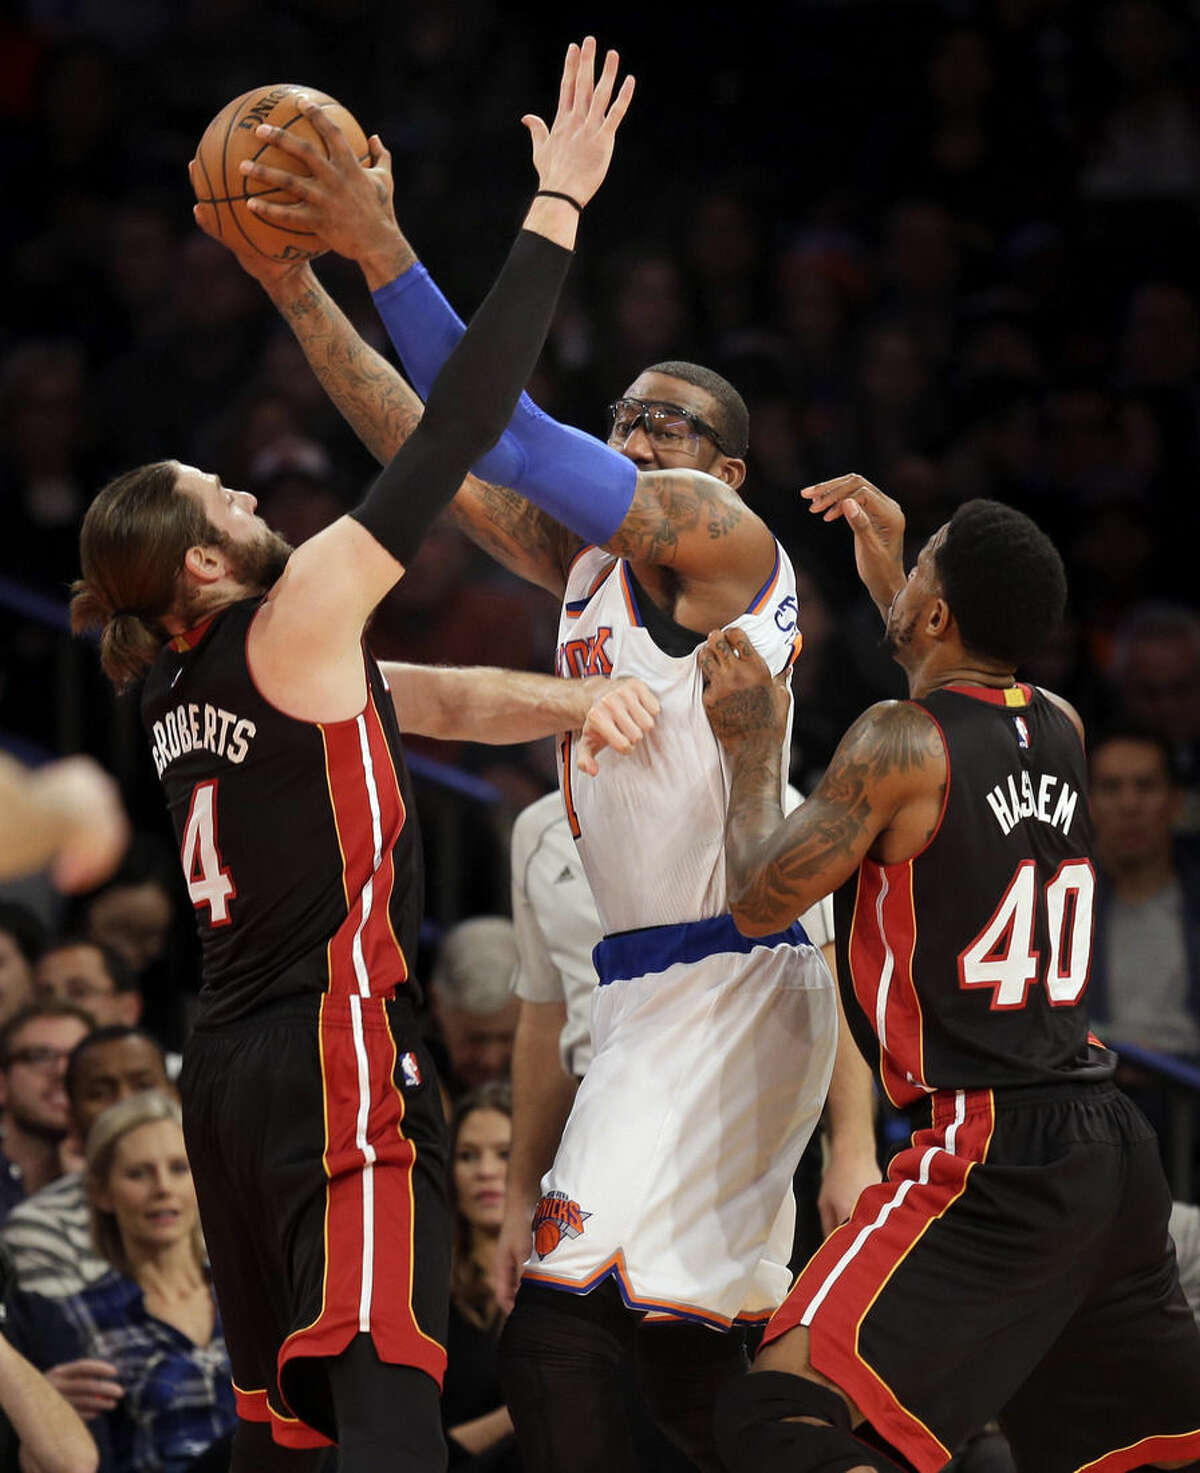 New York Knicks' Amar'e Stoudemire, center, tries to pass around Miami Heat's Josh McRoberts, left, and Udonis Haslem during the first half of an NBA basketball game, Sunday, Nov. 30, 2014, in New York. (AP Photo/Seth Wenig)